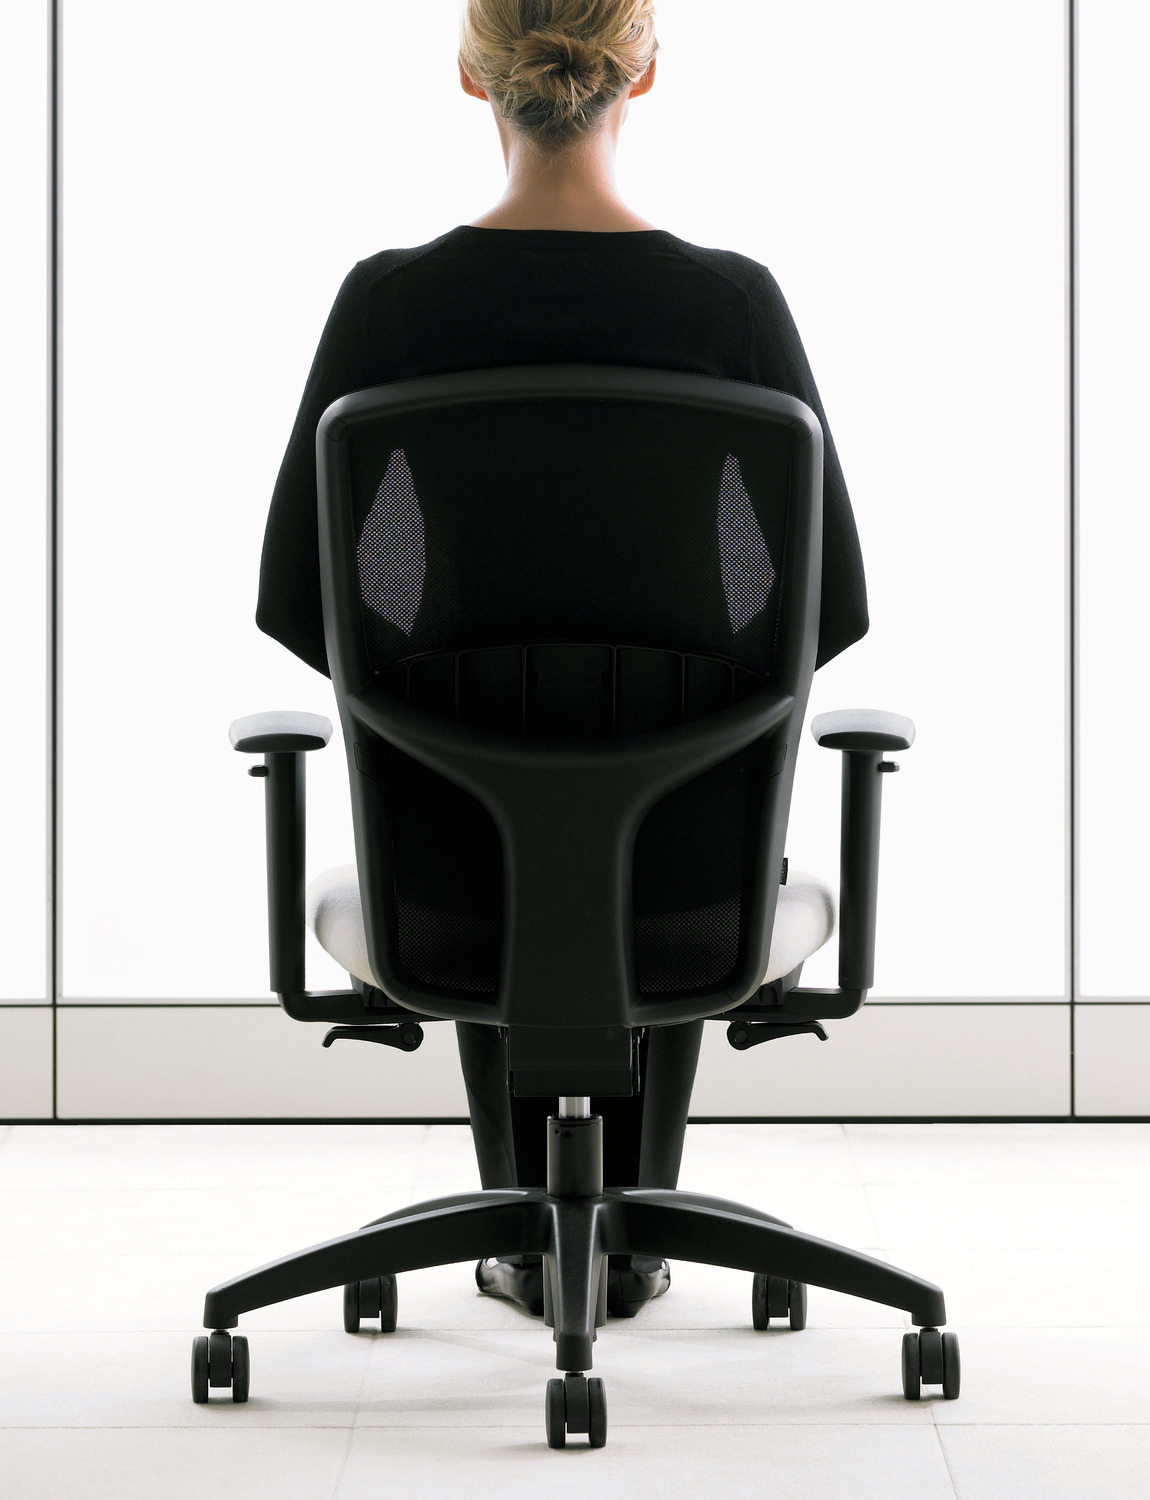 T3 Task Chair - Back View - Brochure Cover - Black Mesh Back.tif